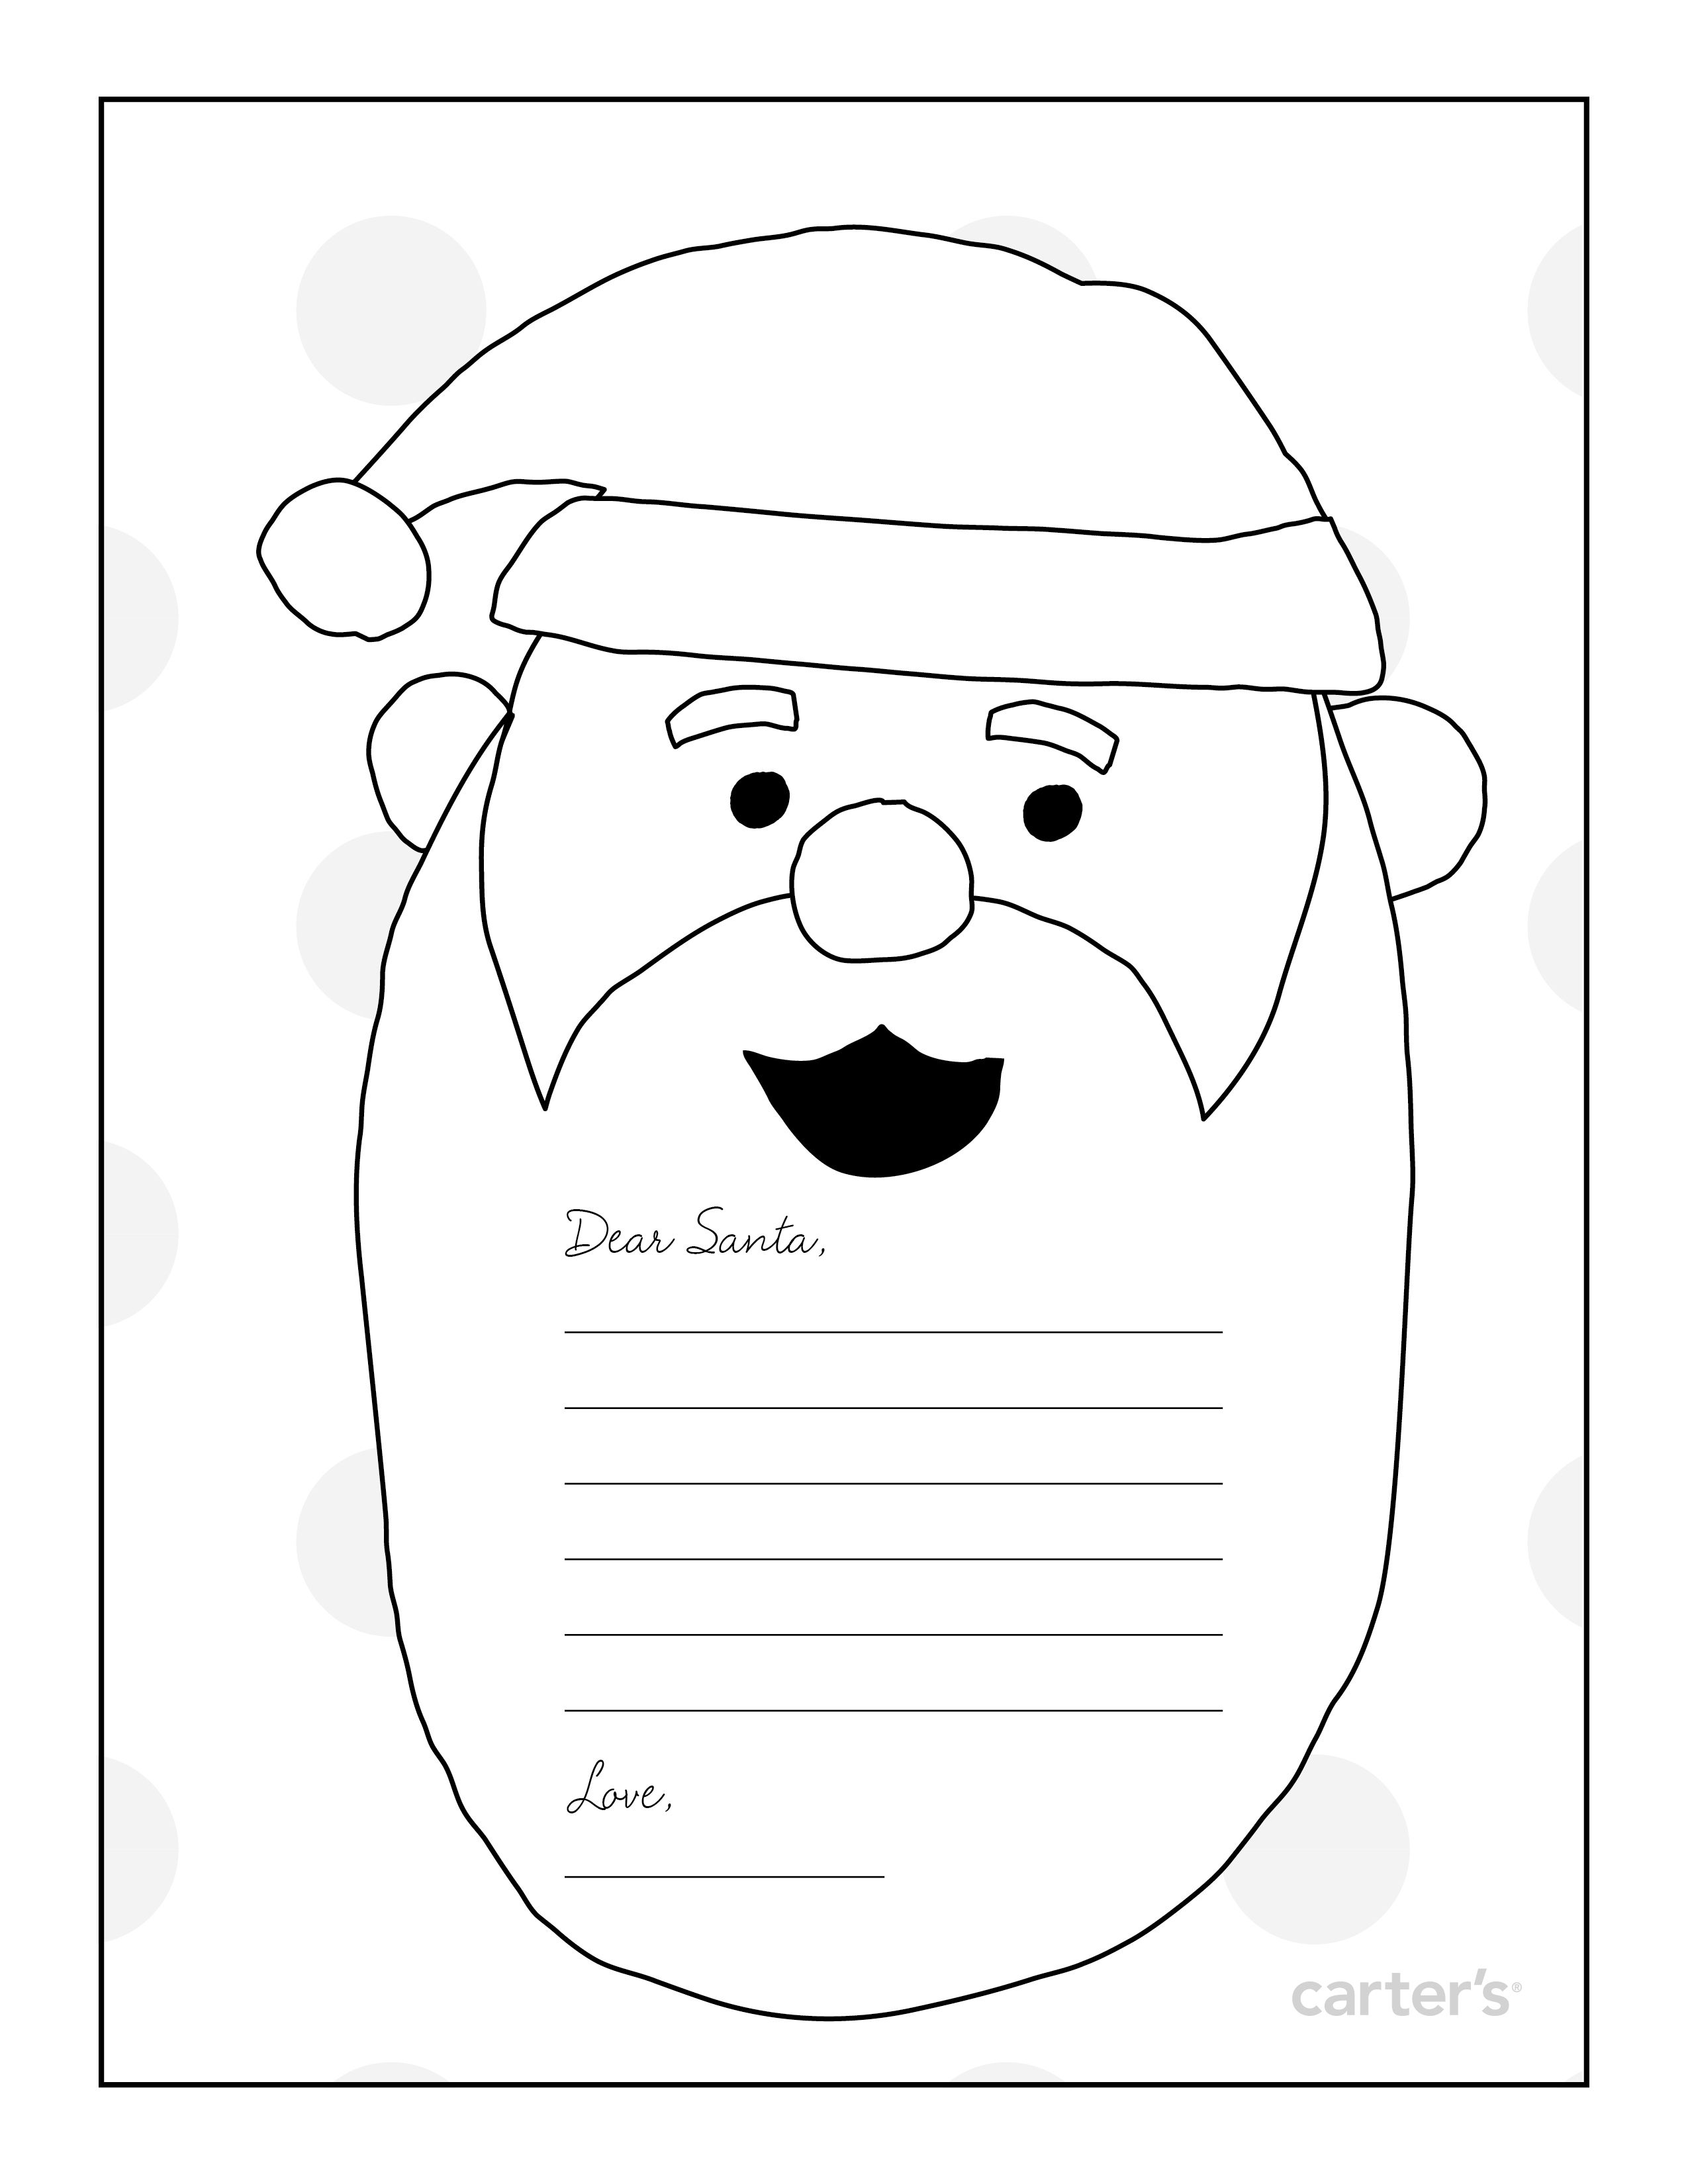 Dear Santa Coloring Page With ColoringPage Christmas Pinterest And Letter